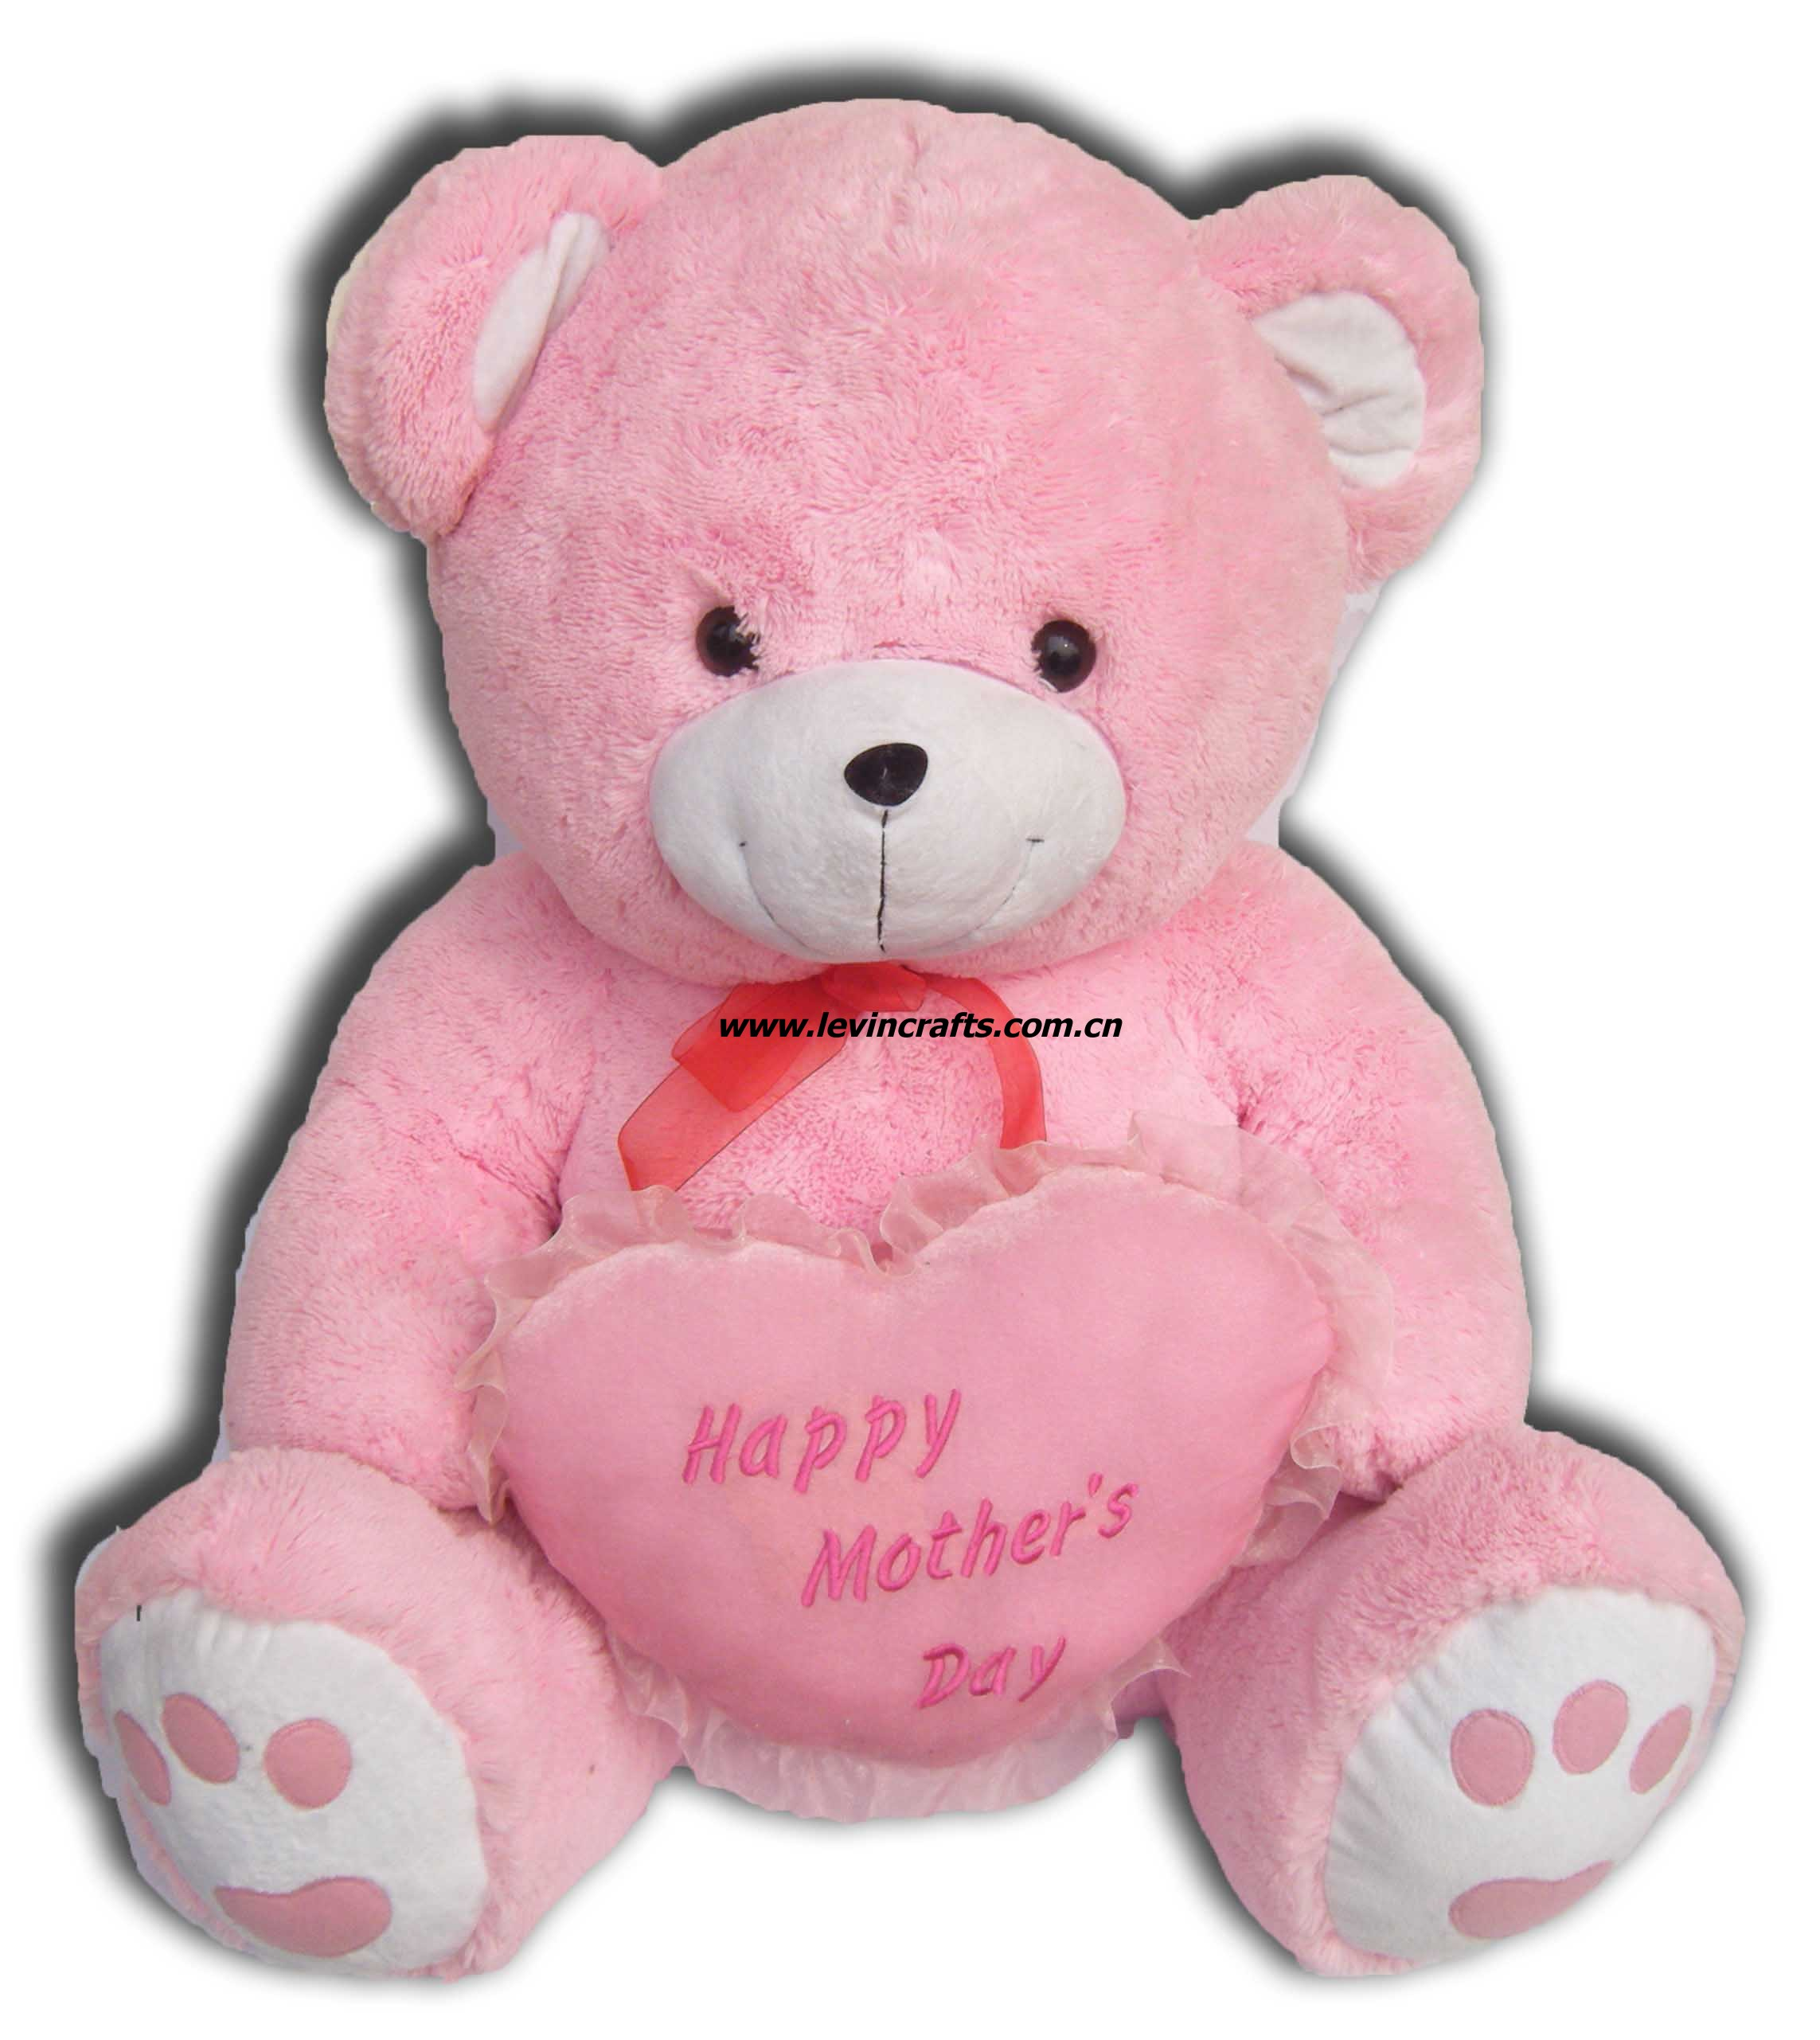 Lovely and Cute Pink Teddy Bear - Colors Photo (34605167) - Fanpop